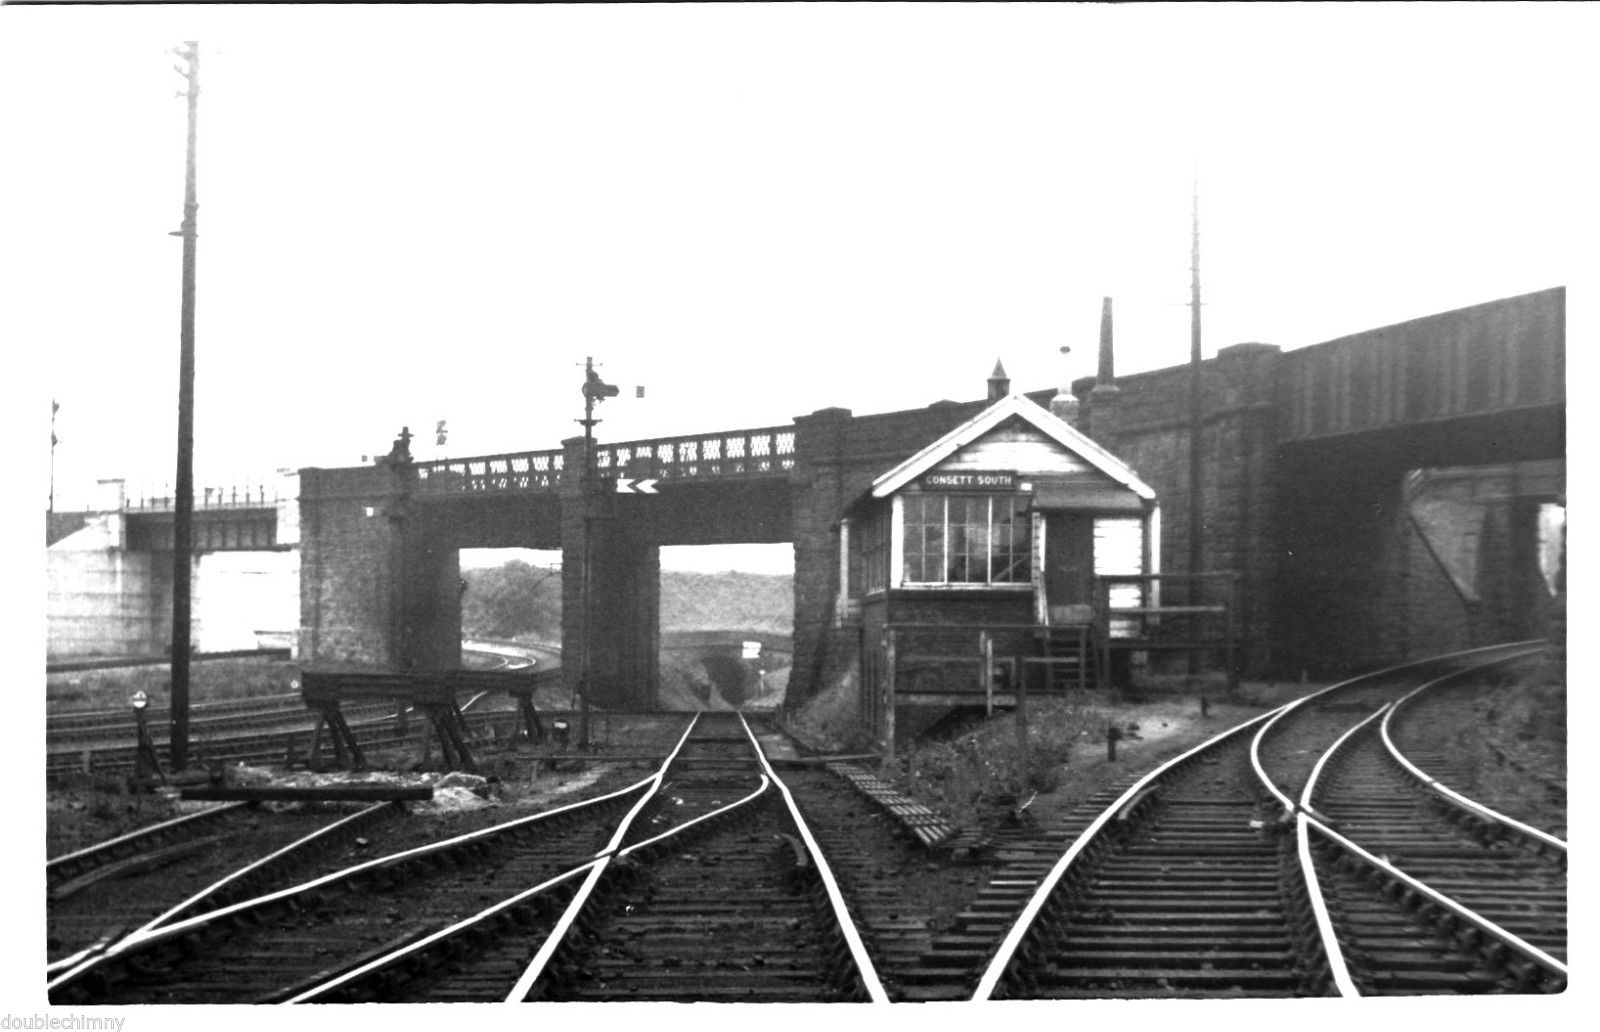 Consett South Signal Box on 16 July 1962. Photo copyright George Devine